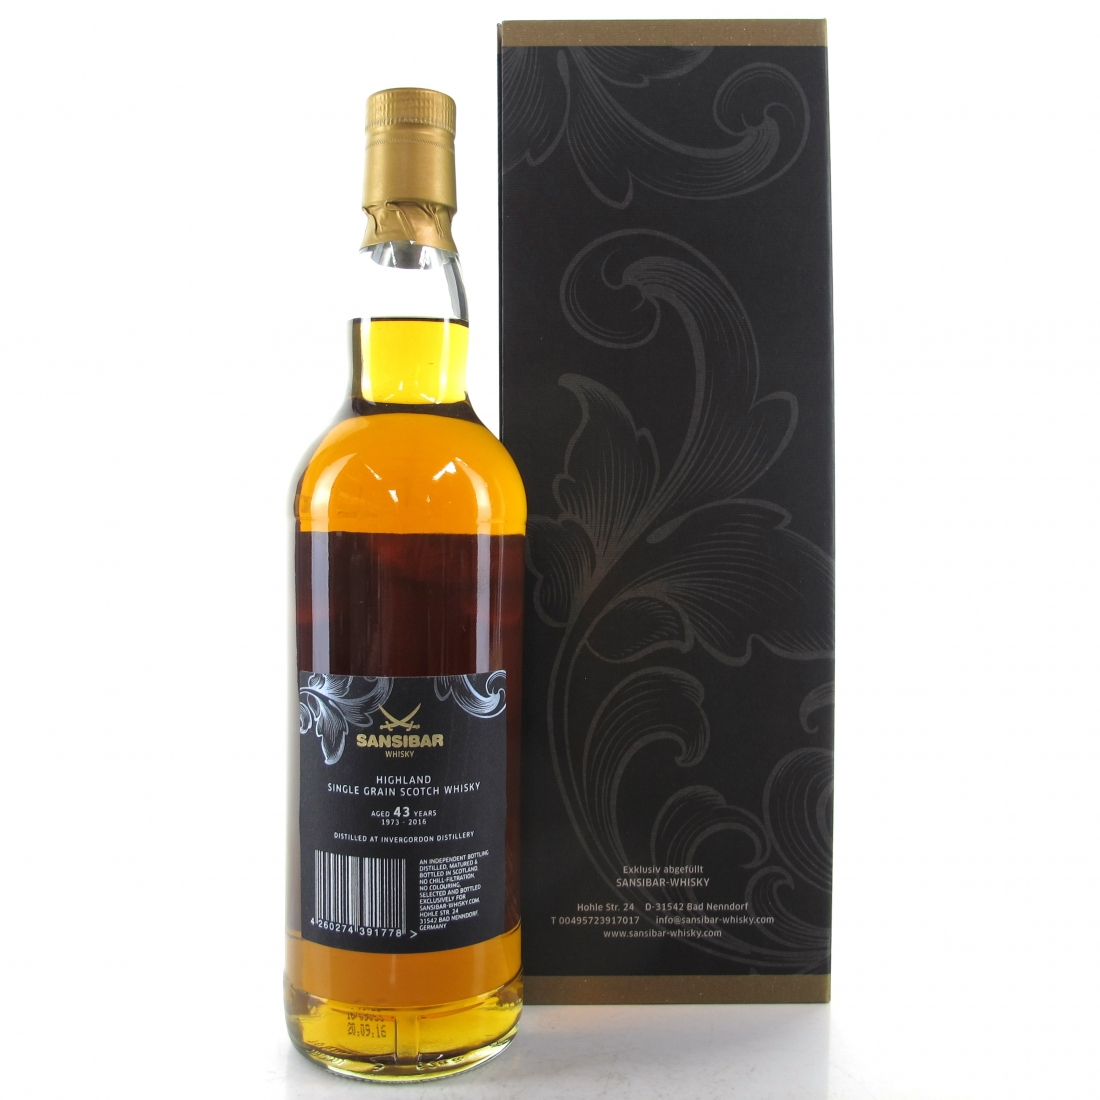 Invergordon 1973 Sansibar 43 Year Old